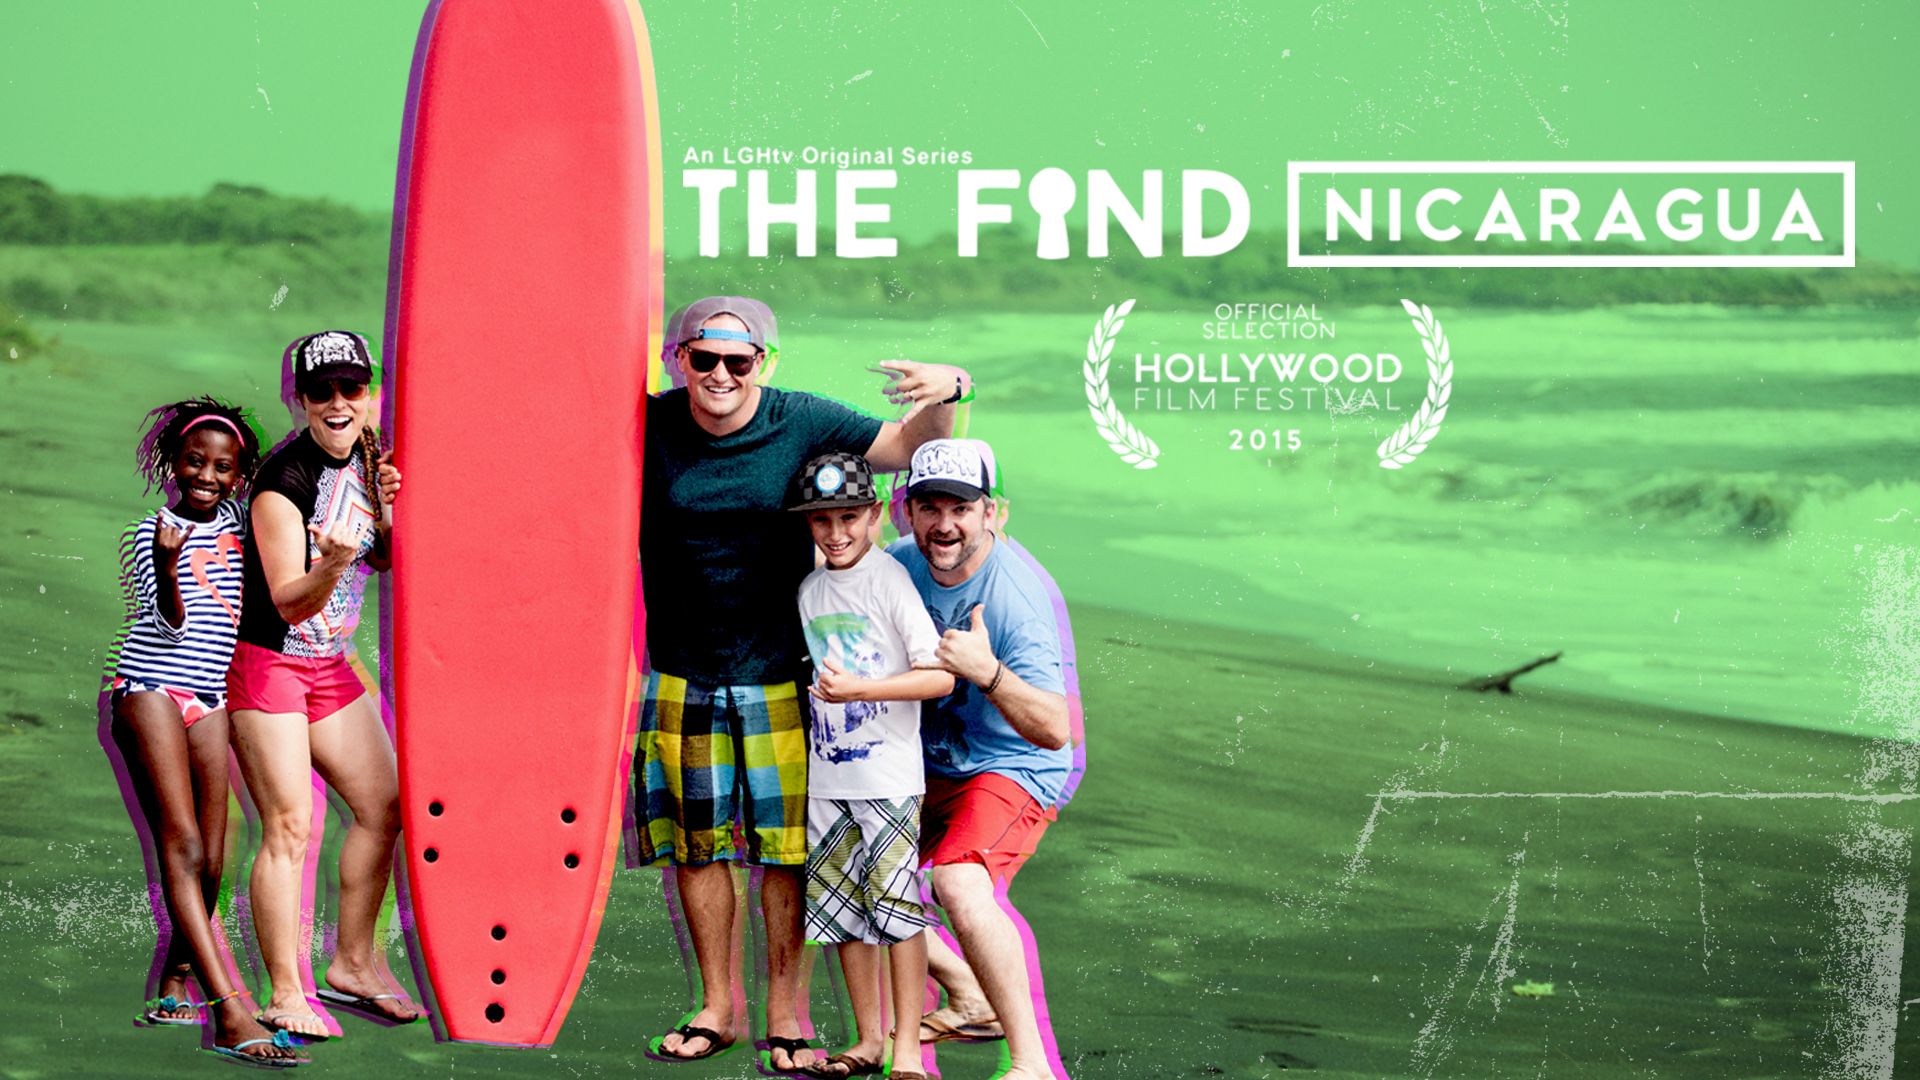 The FIND: Nicaragua - 6 EPISODES | 101 MIN